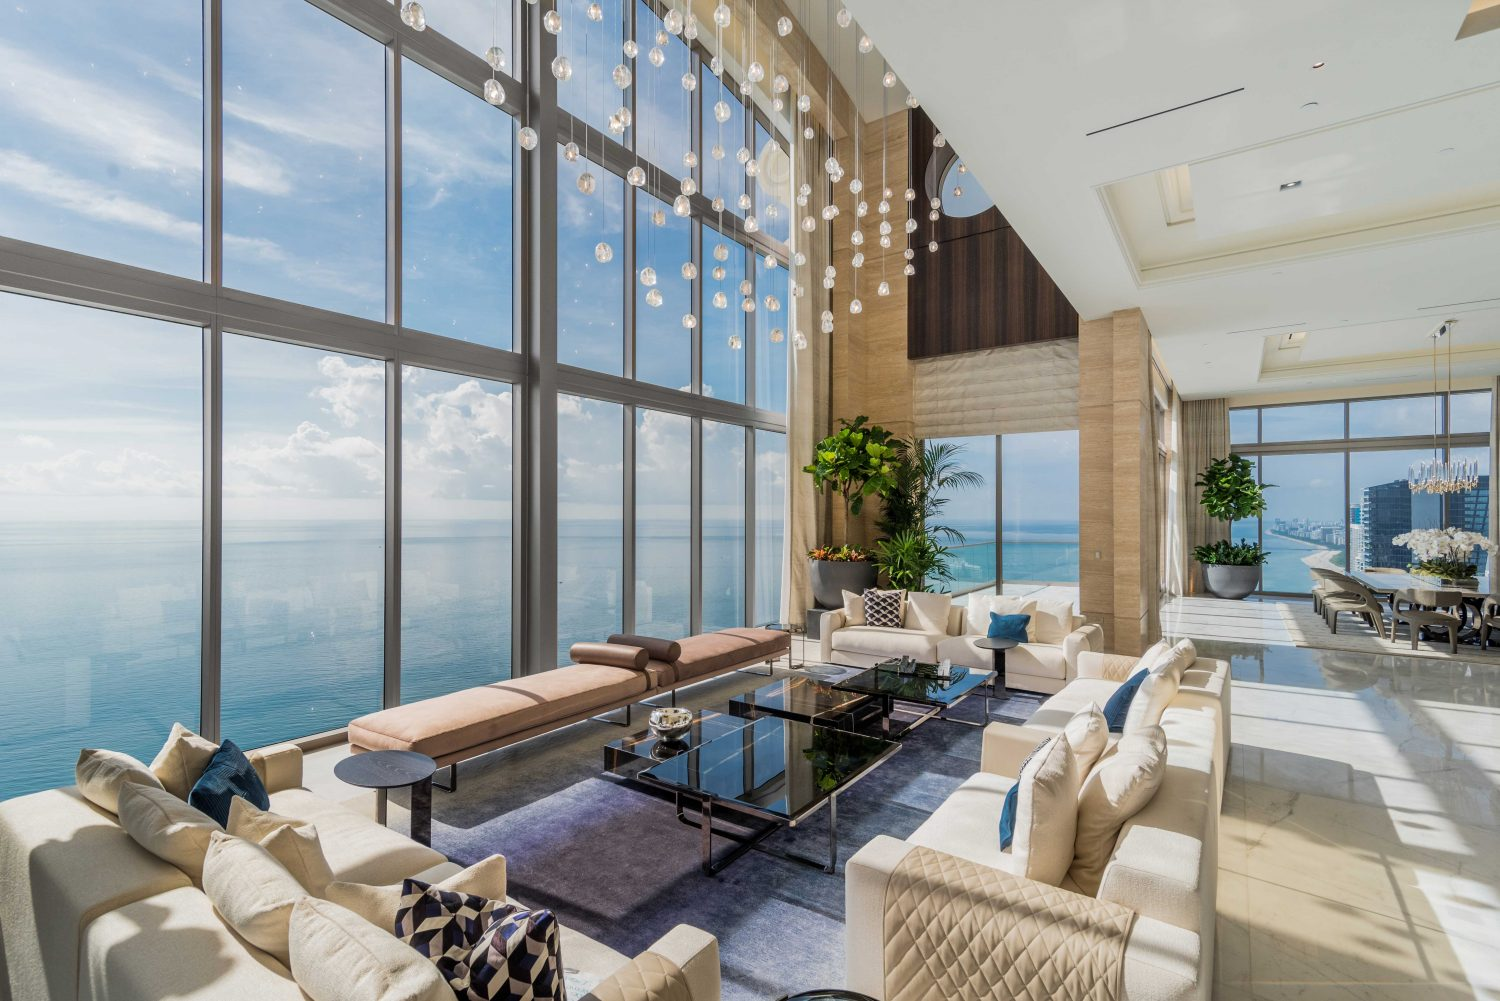 187 Living Large Sky High Luxury Penthouse Features Cantilevered Pool Over Collins Avenue